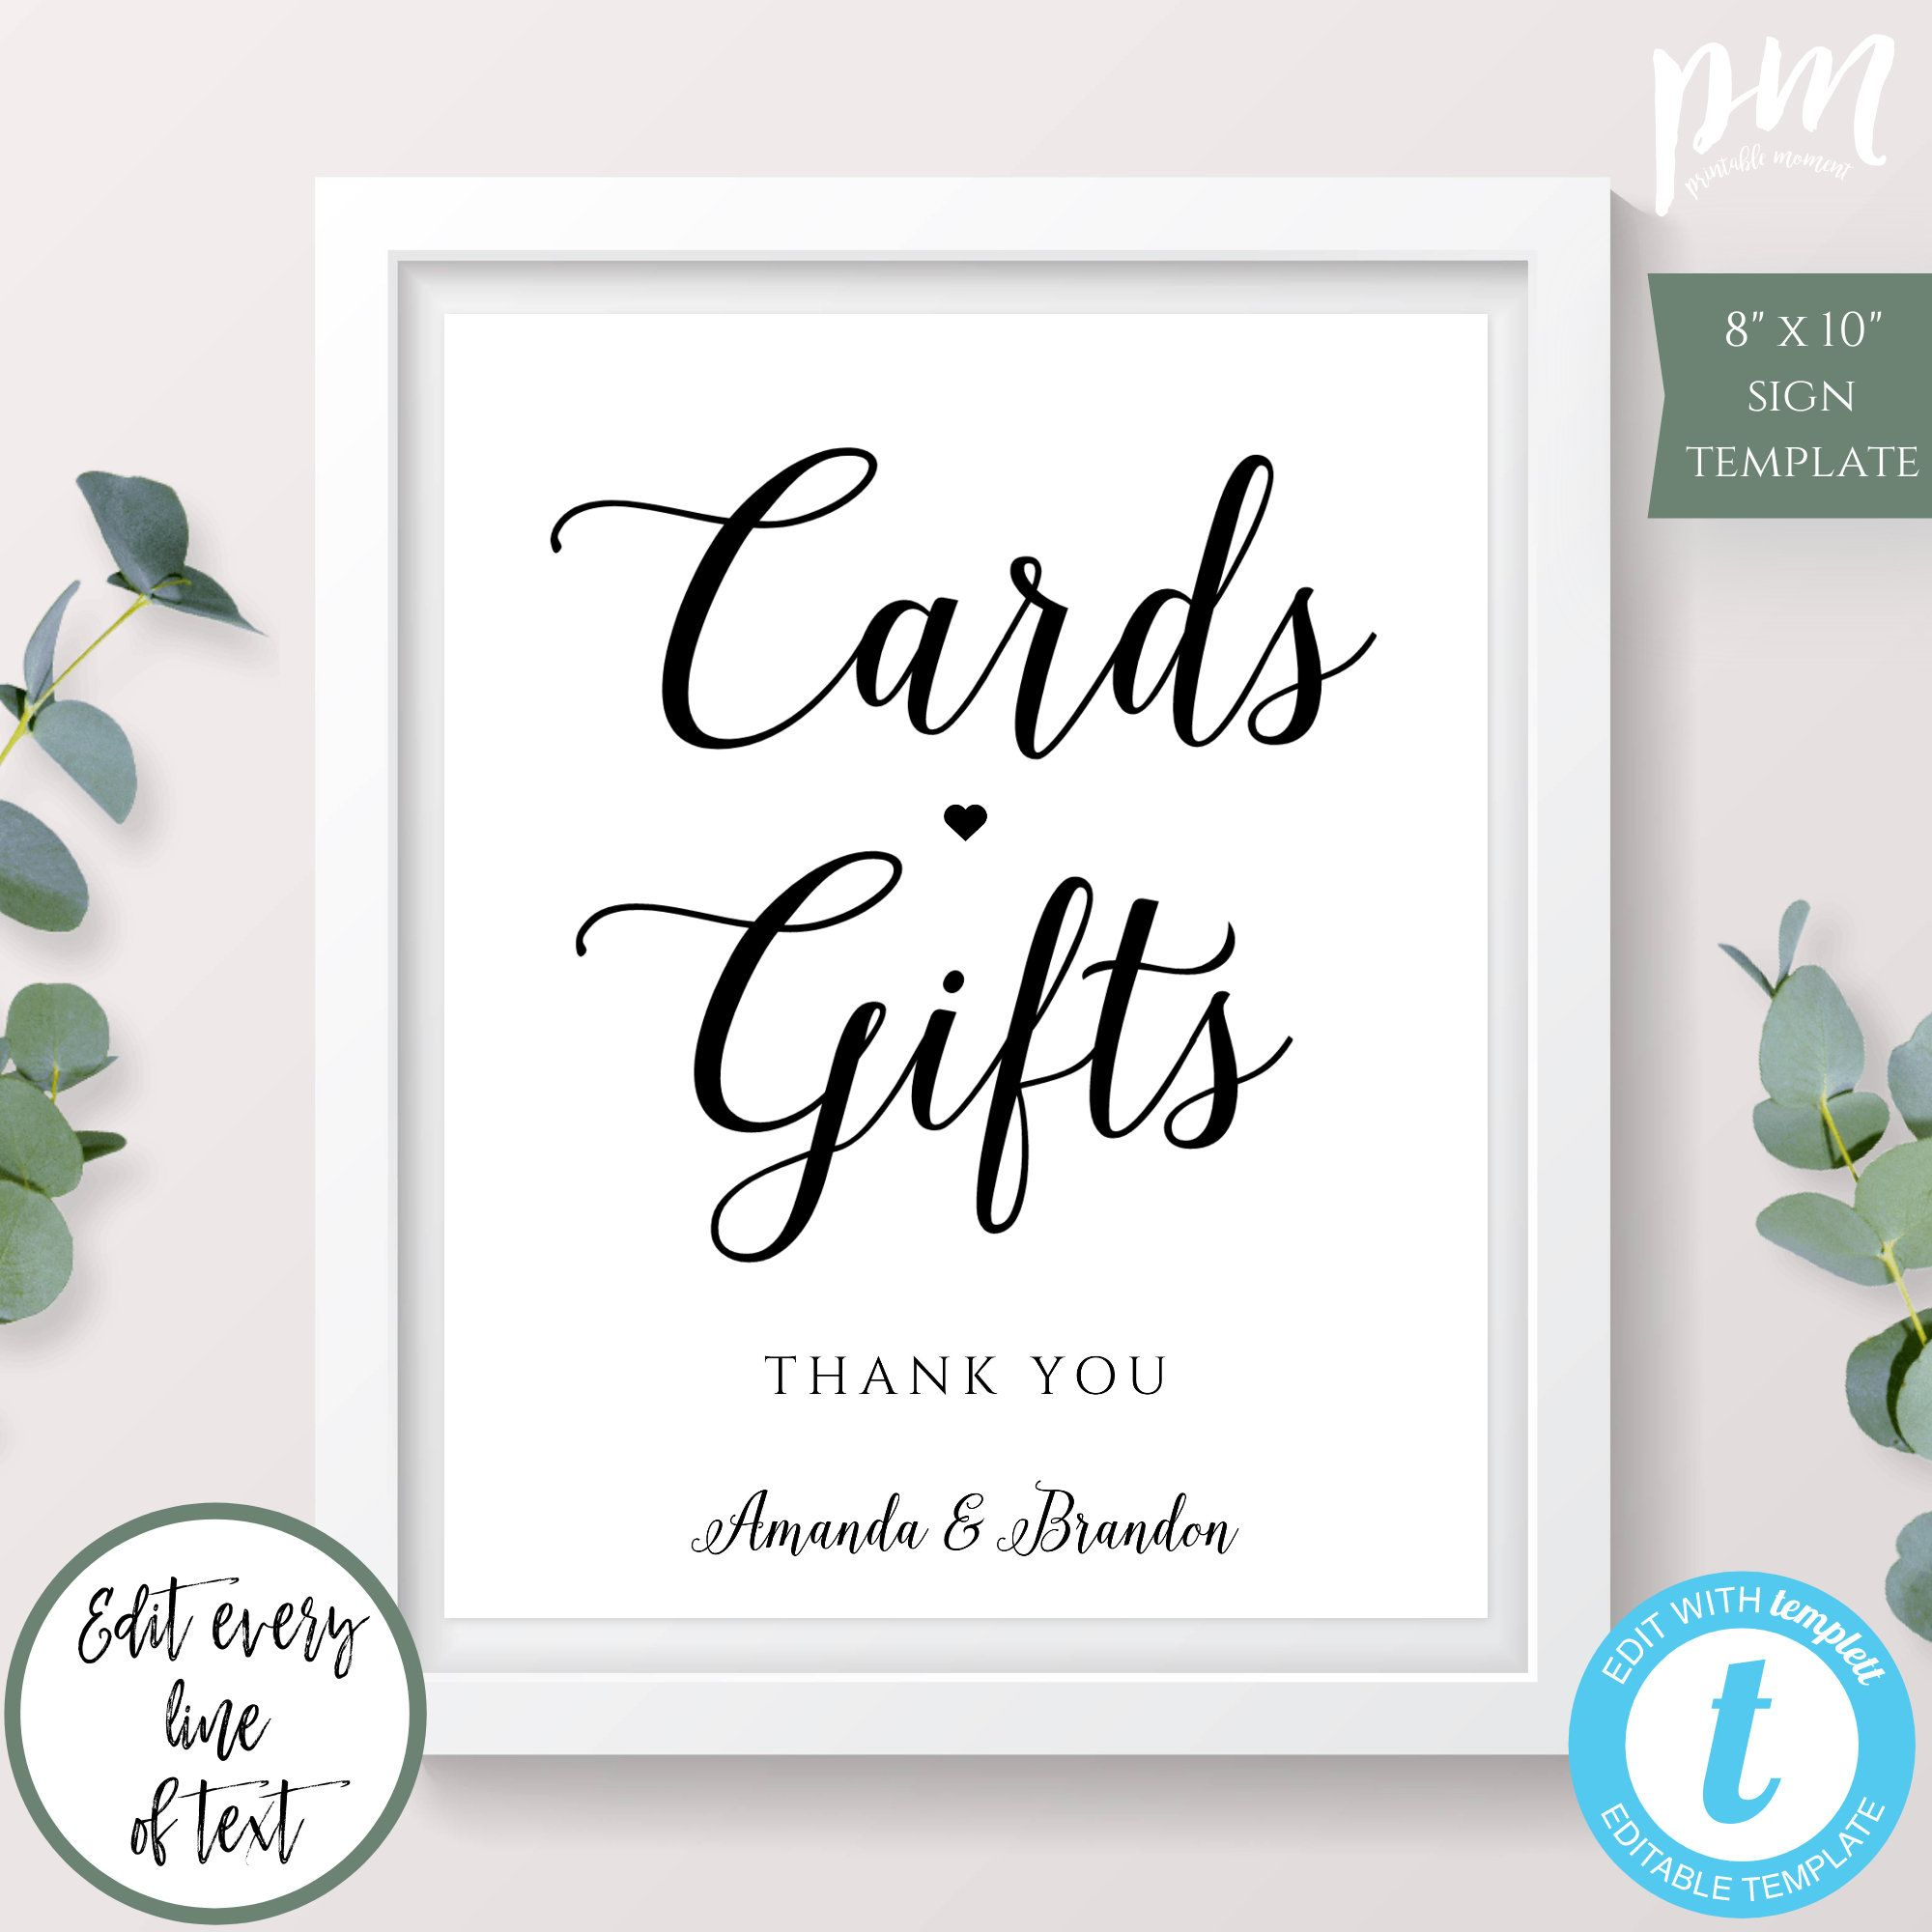 Cards Gifts Wedding Sign Gifts And Cards Sign Printable Etsy Cards Sign Wedding Signs Wedding Calligraphy Signs